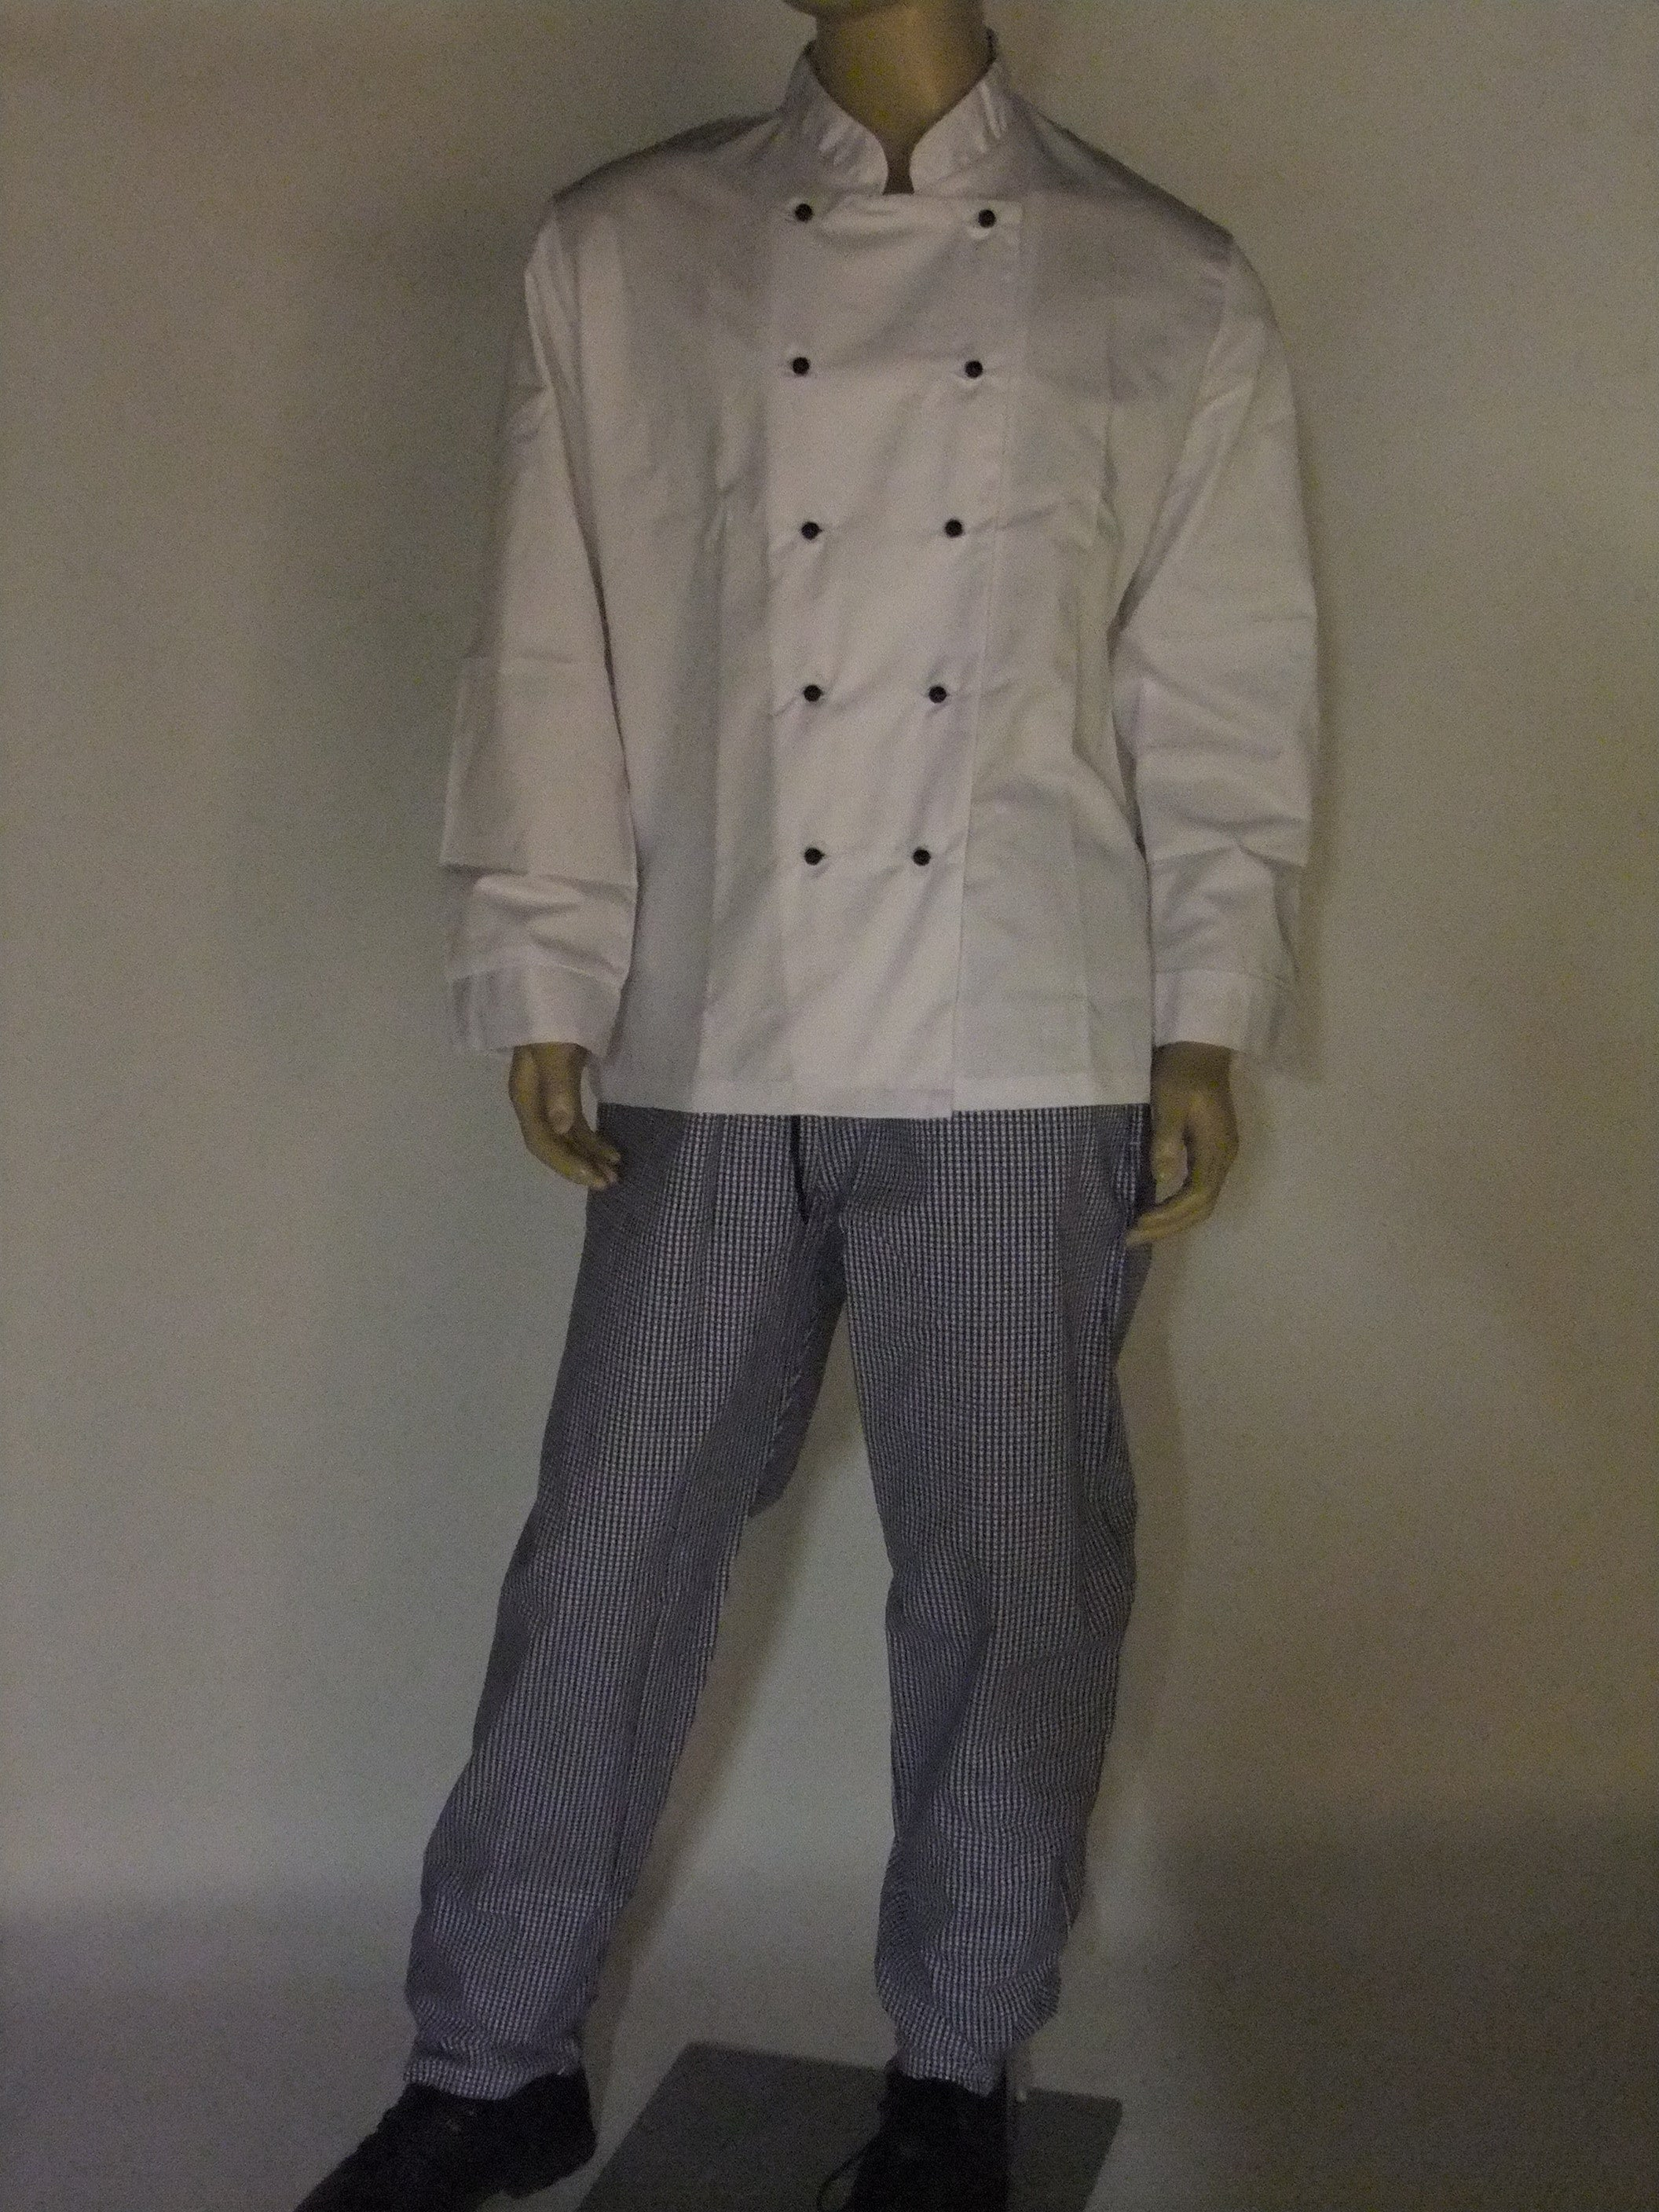 Genuine Chef suit.